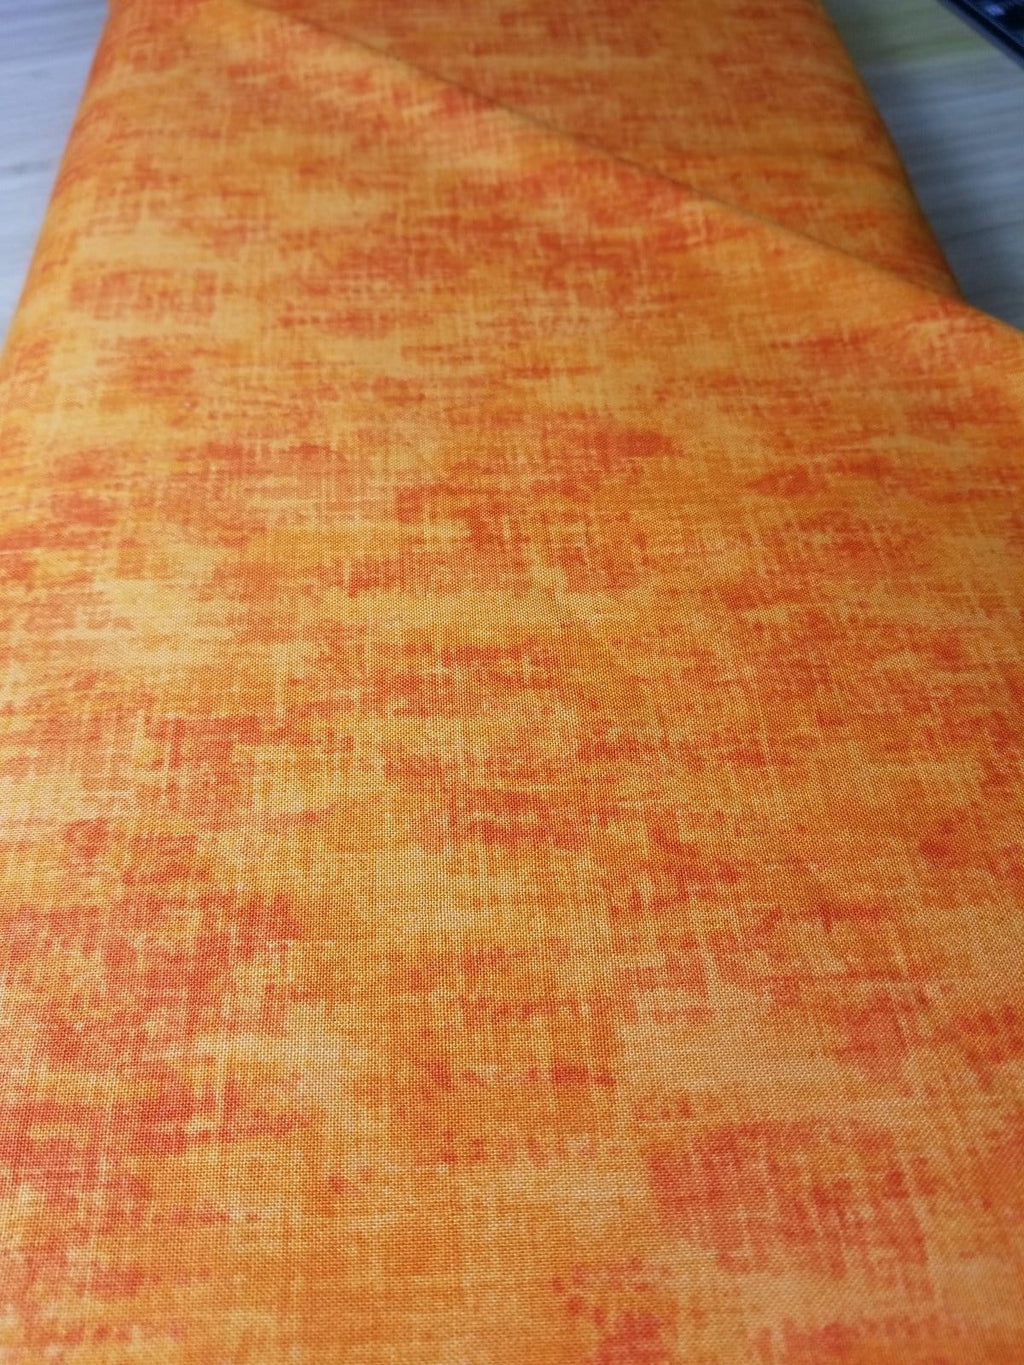 Cotton Fabric by Timeless Treasures - Studio Orange - The Artisans Gifting Company